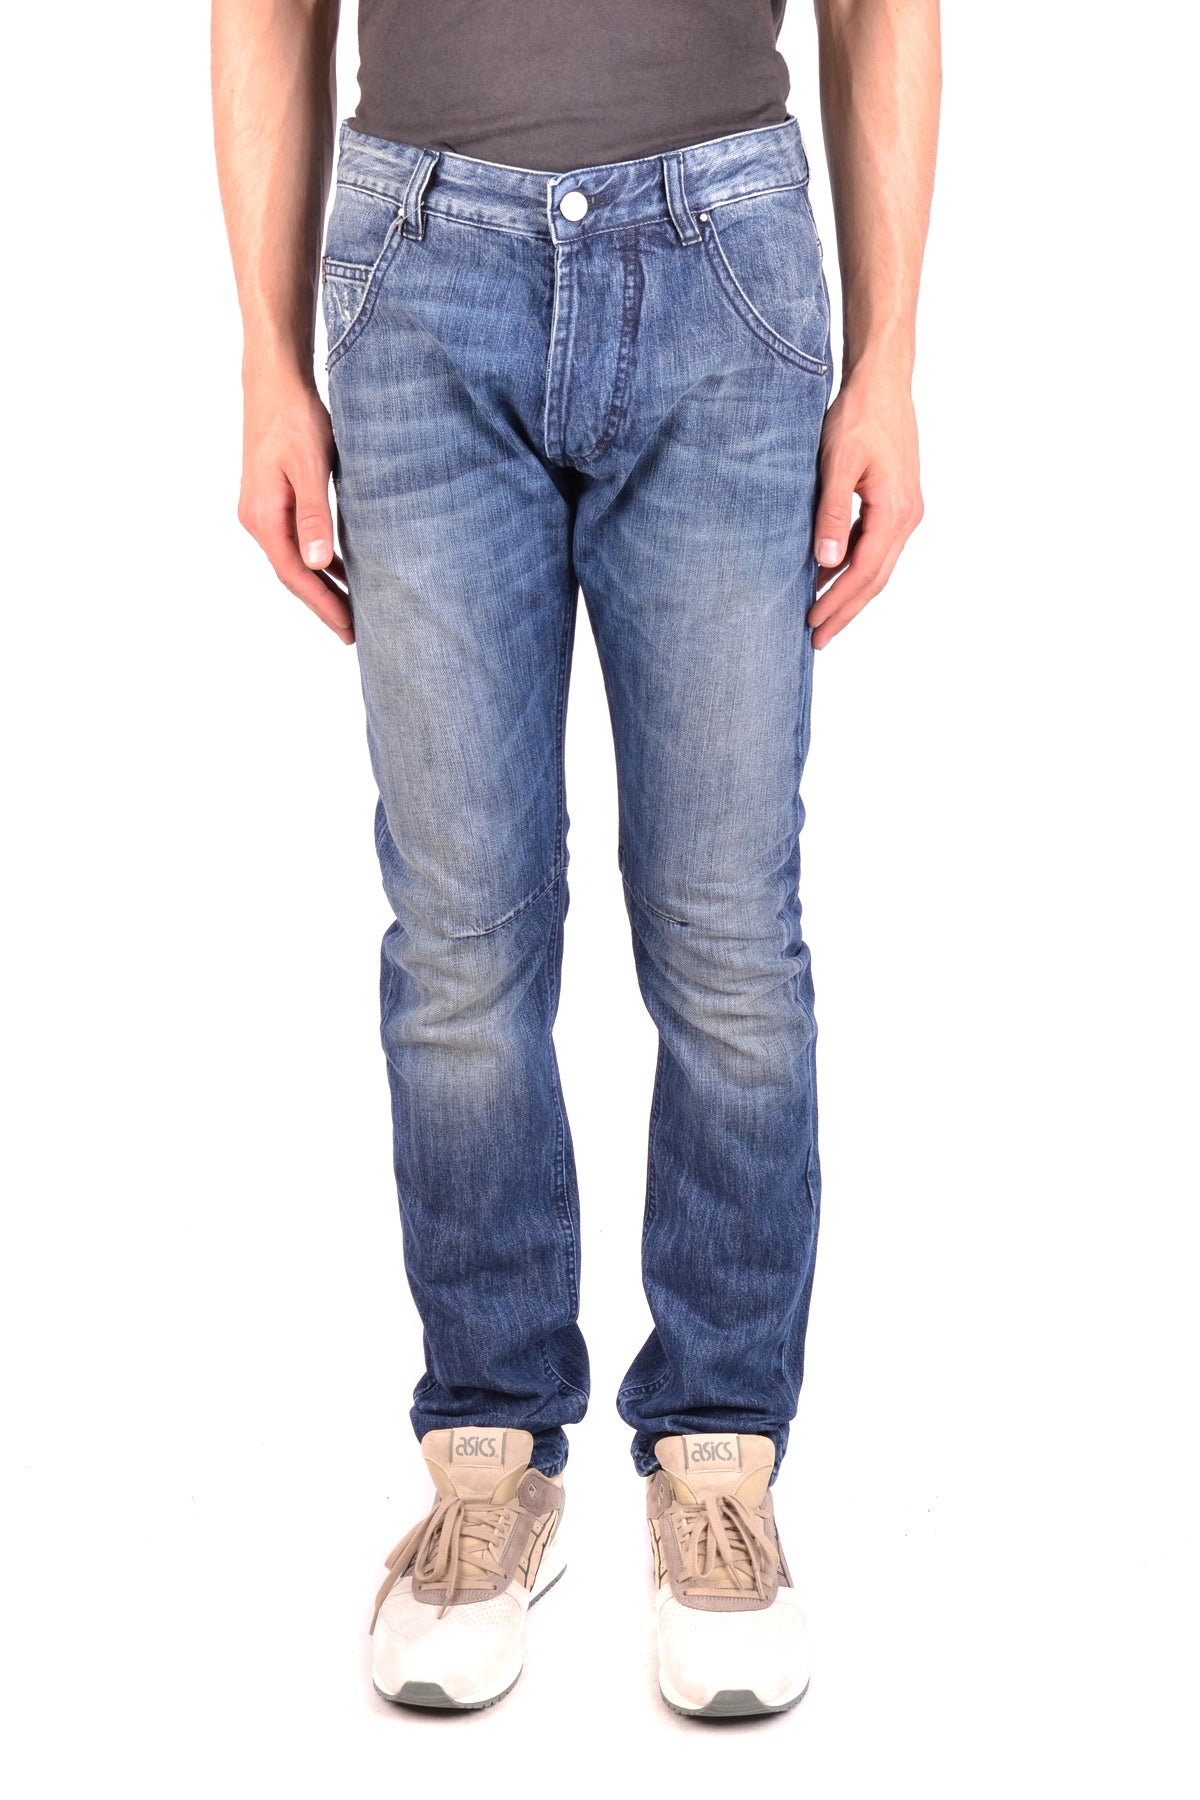 Jeans Pierre Balmain-Men's Fashion - Men's Clothing - Jeans-31-Product Details Composition: Cotton 35%, Polyester 65%Size: UsGender: ManMade In: ItalySeason: Fall / WinterMain Color: BlueClothing Type: JeansTerms: New With Label-Keyomi-Sook